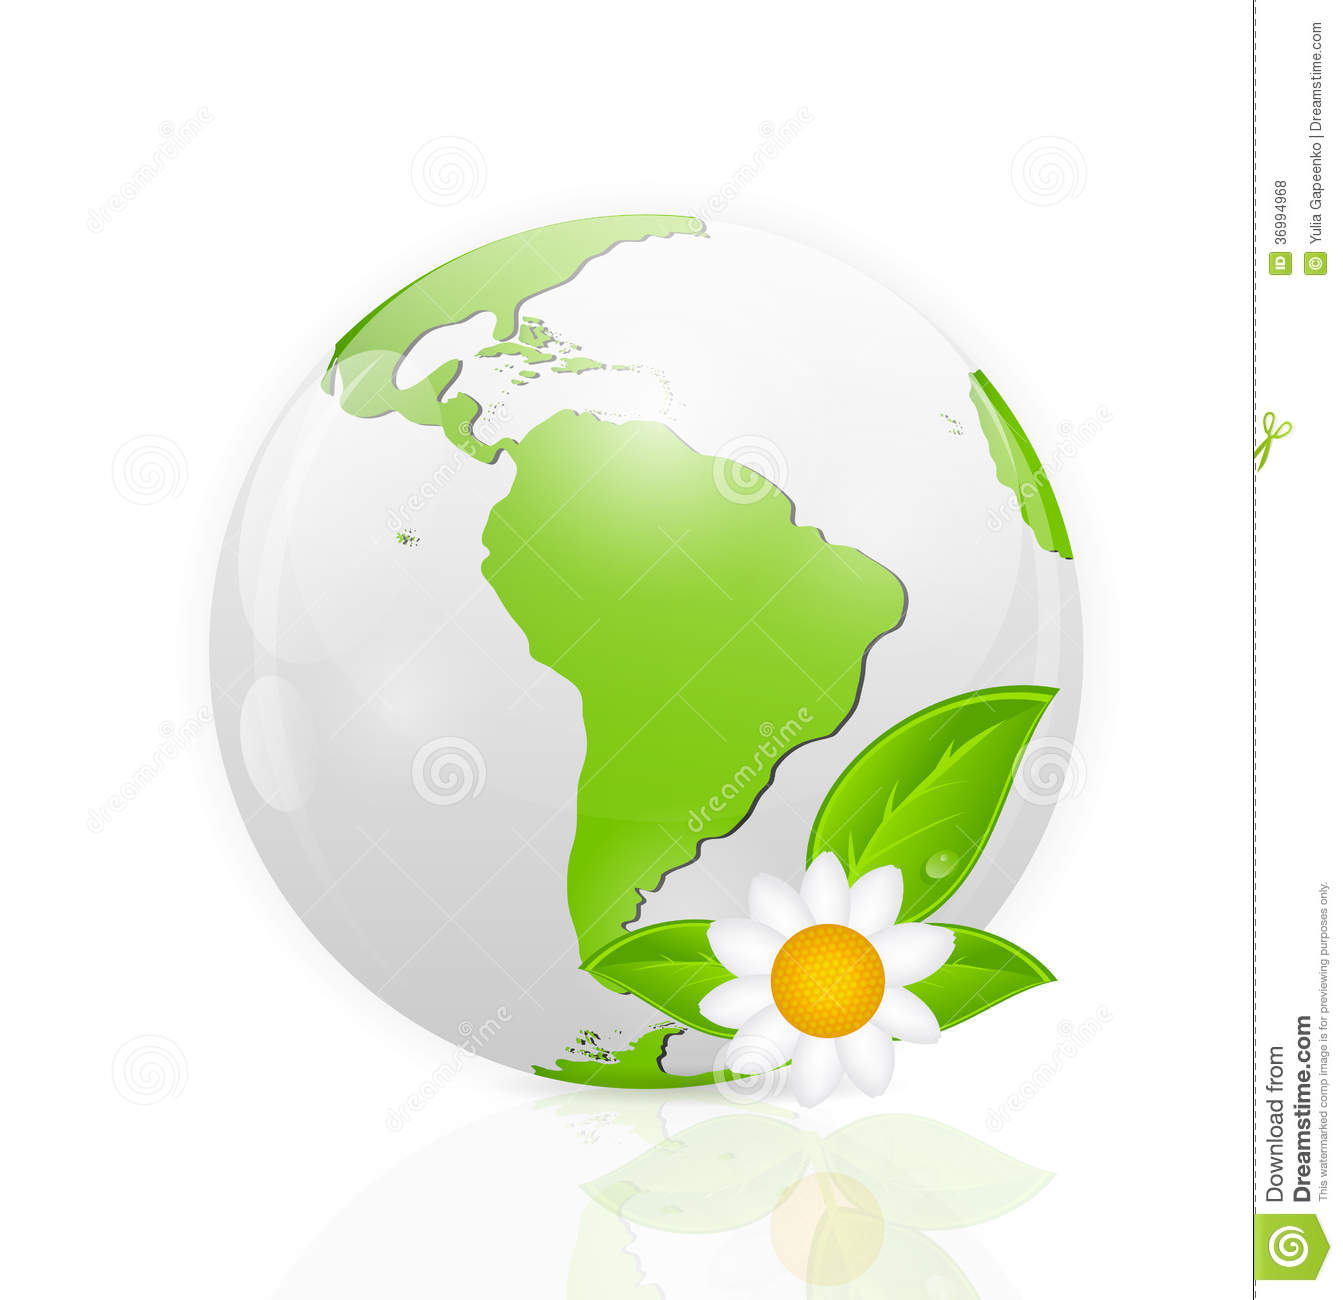 Green Eco Planet Concept Vector Illustration Royalty Free